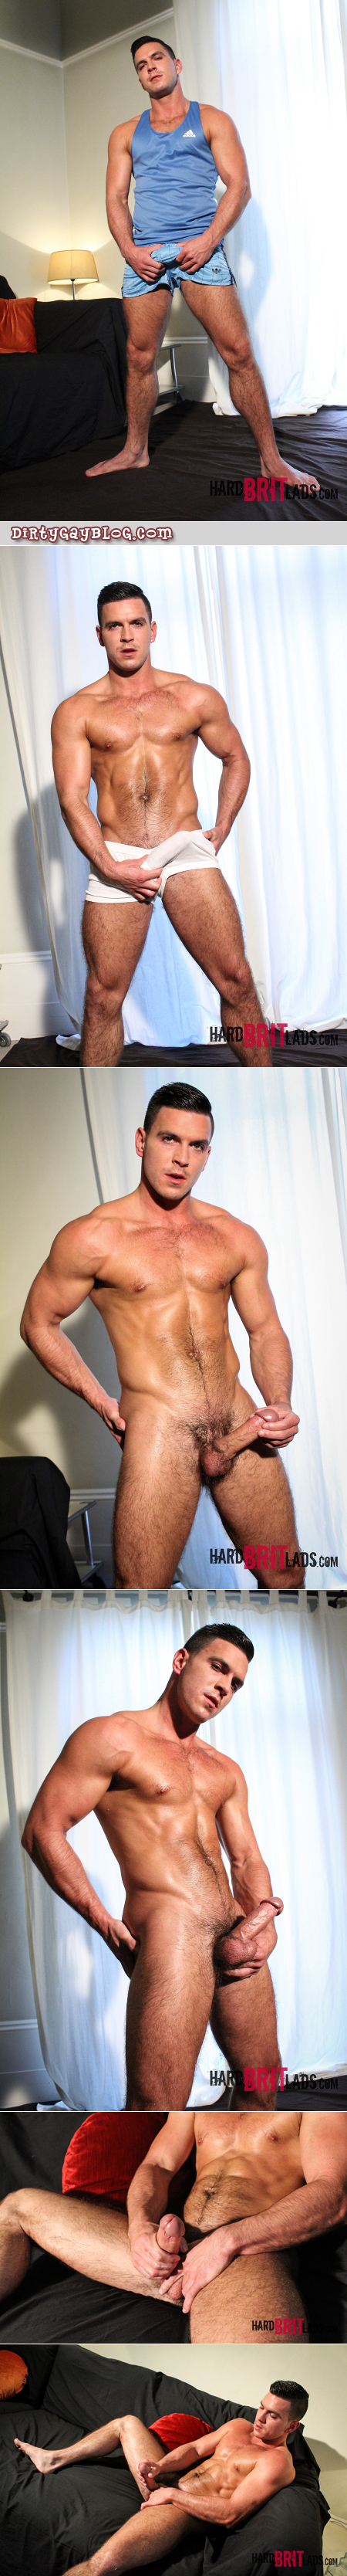 Hairy, muscular male athlete getting naked and masturbating.